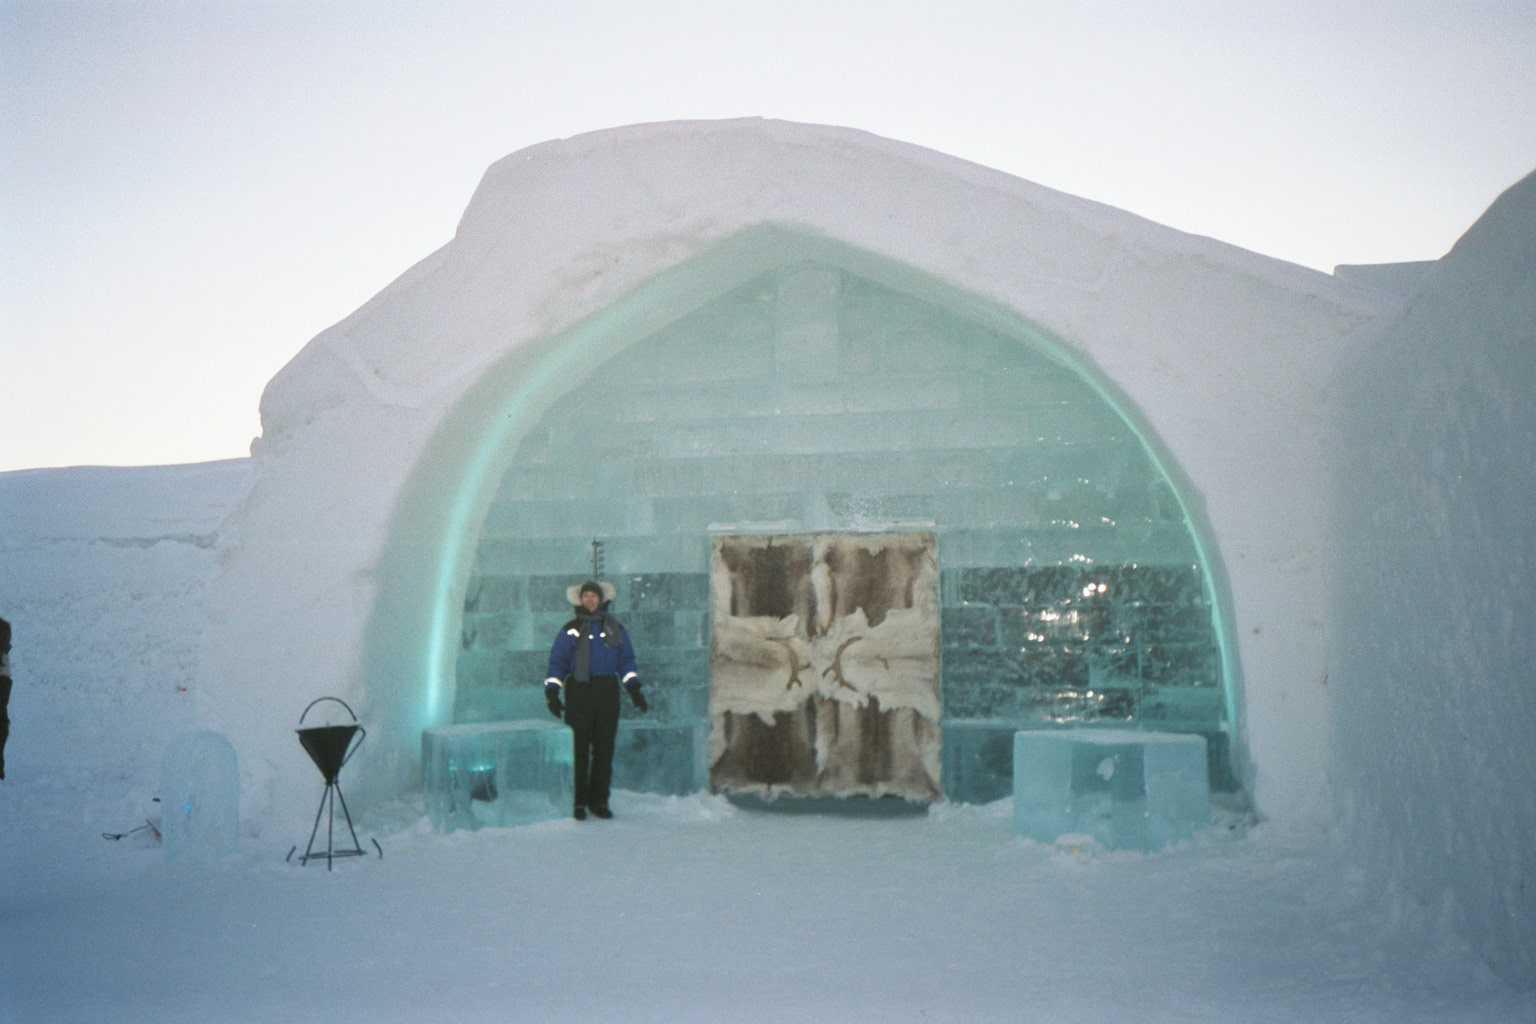 revolutionary designs 2013 ice hotel news and products. Black Bedroom Furniture Sets. Home Design Ideas